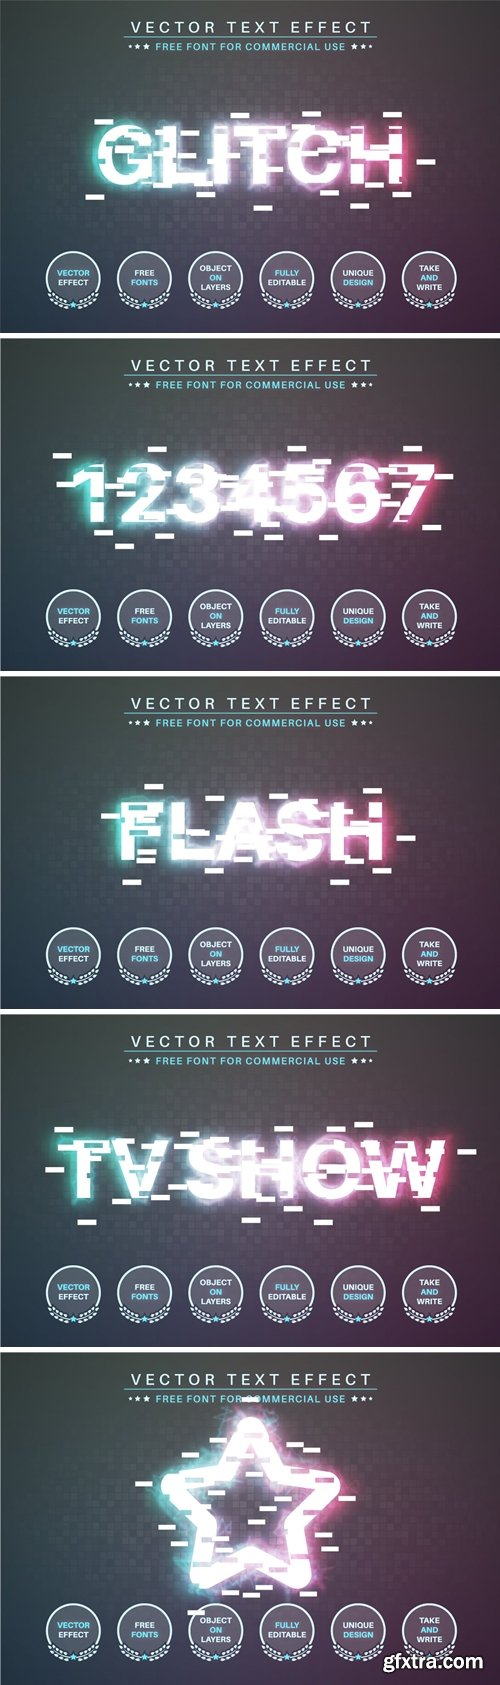 Glitch - Editable Text Effect, Font Style